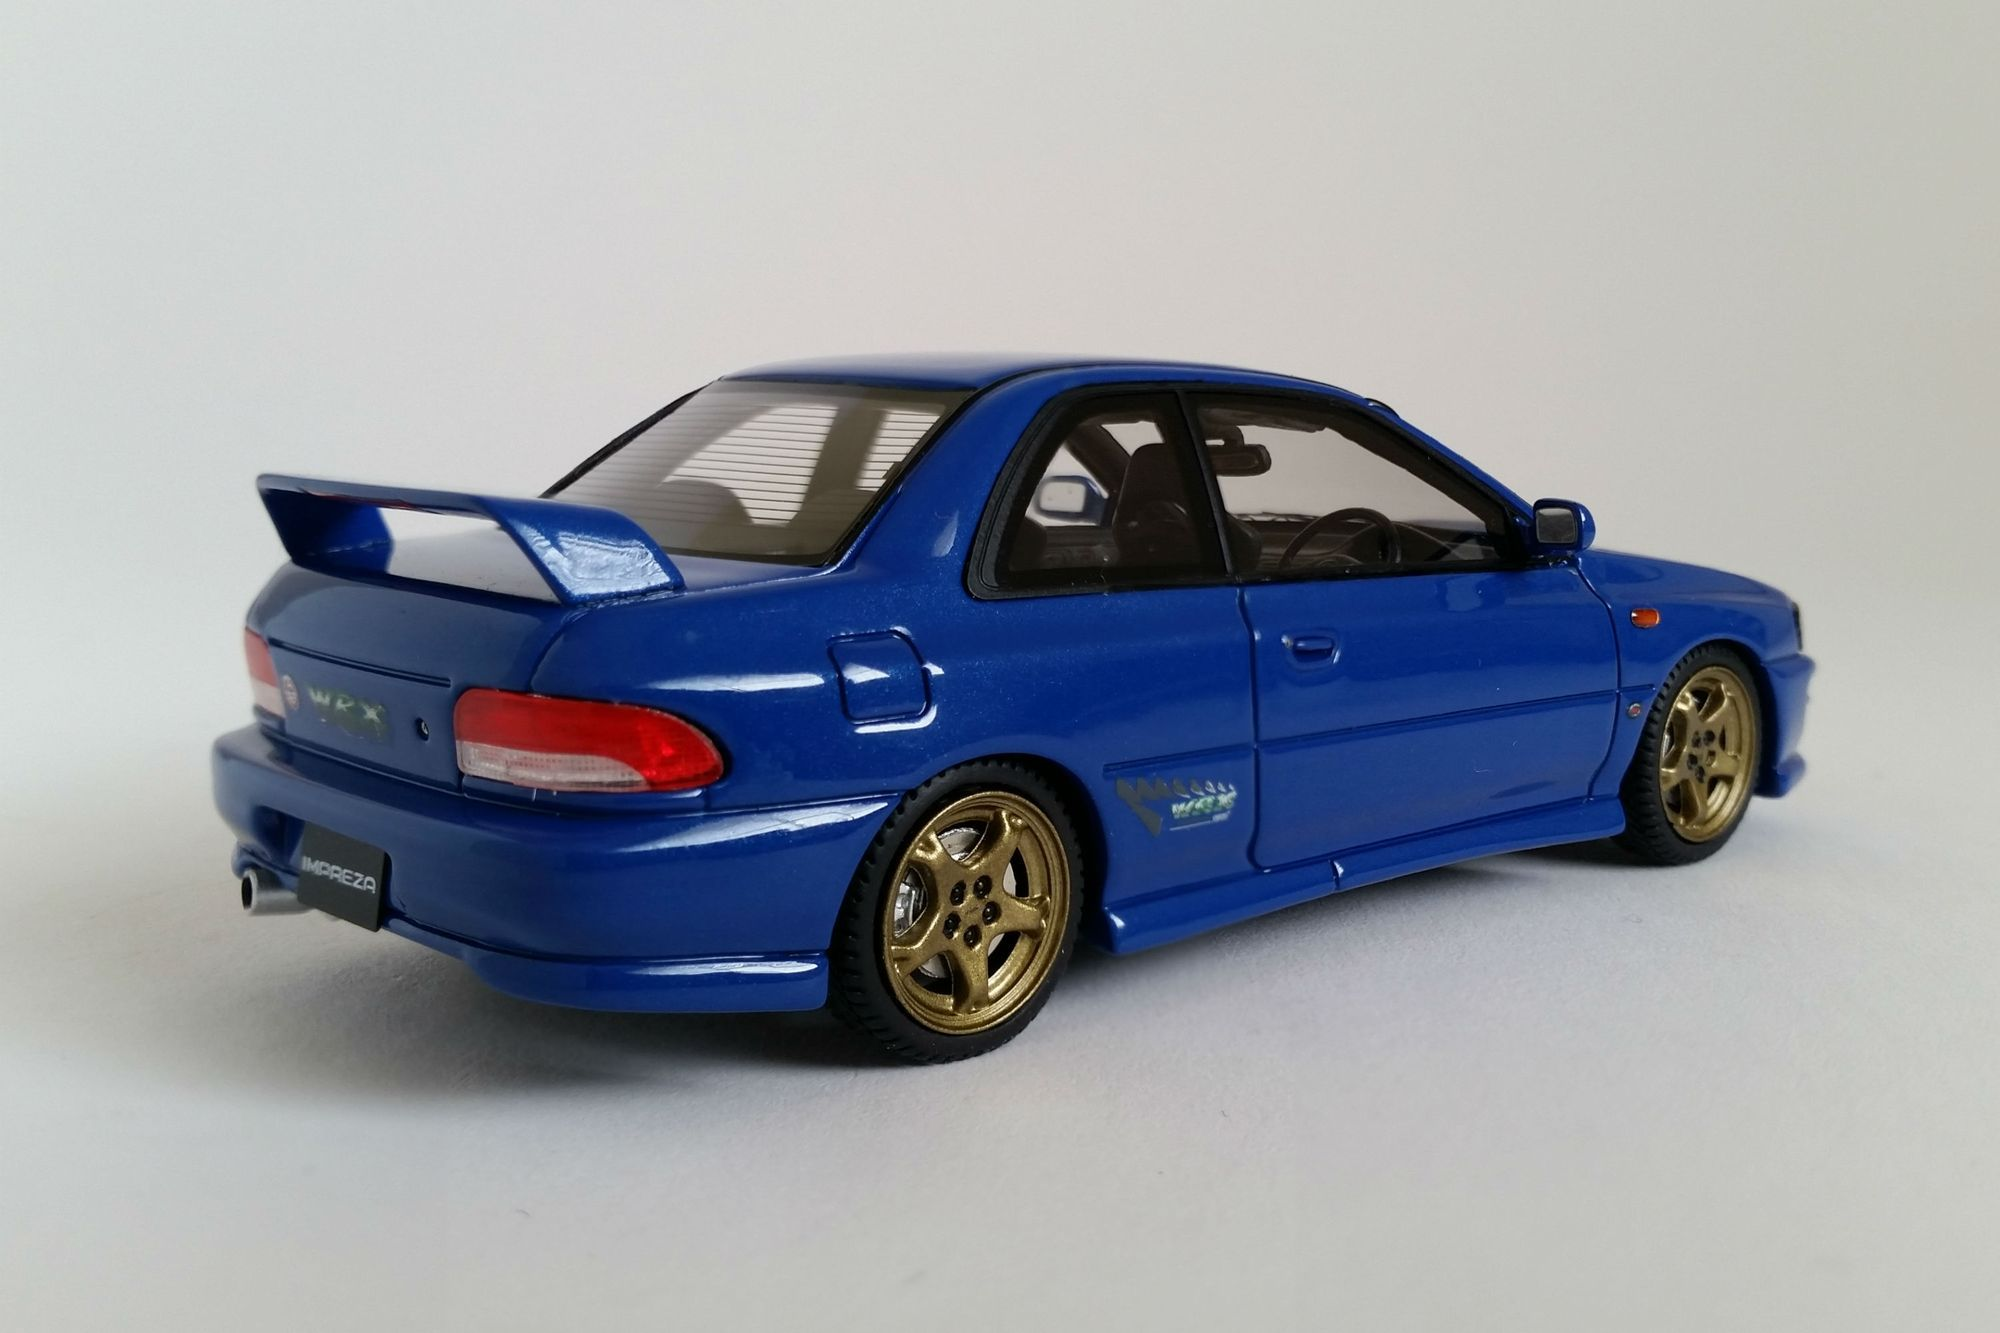 1212540eede6dbfaef736e05d8266060 Take A Look About 2002 Subaru Impreza Wrx Specs